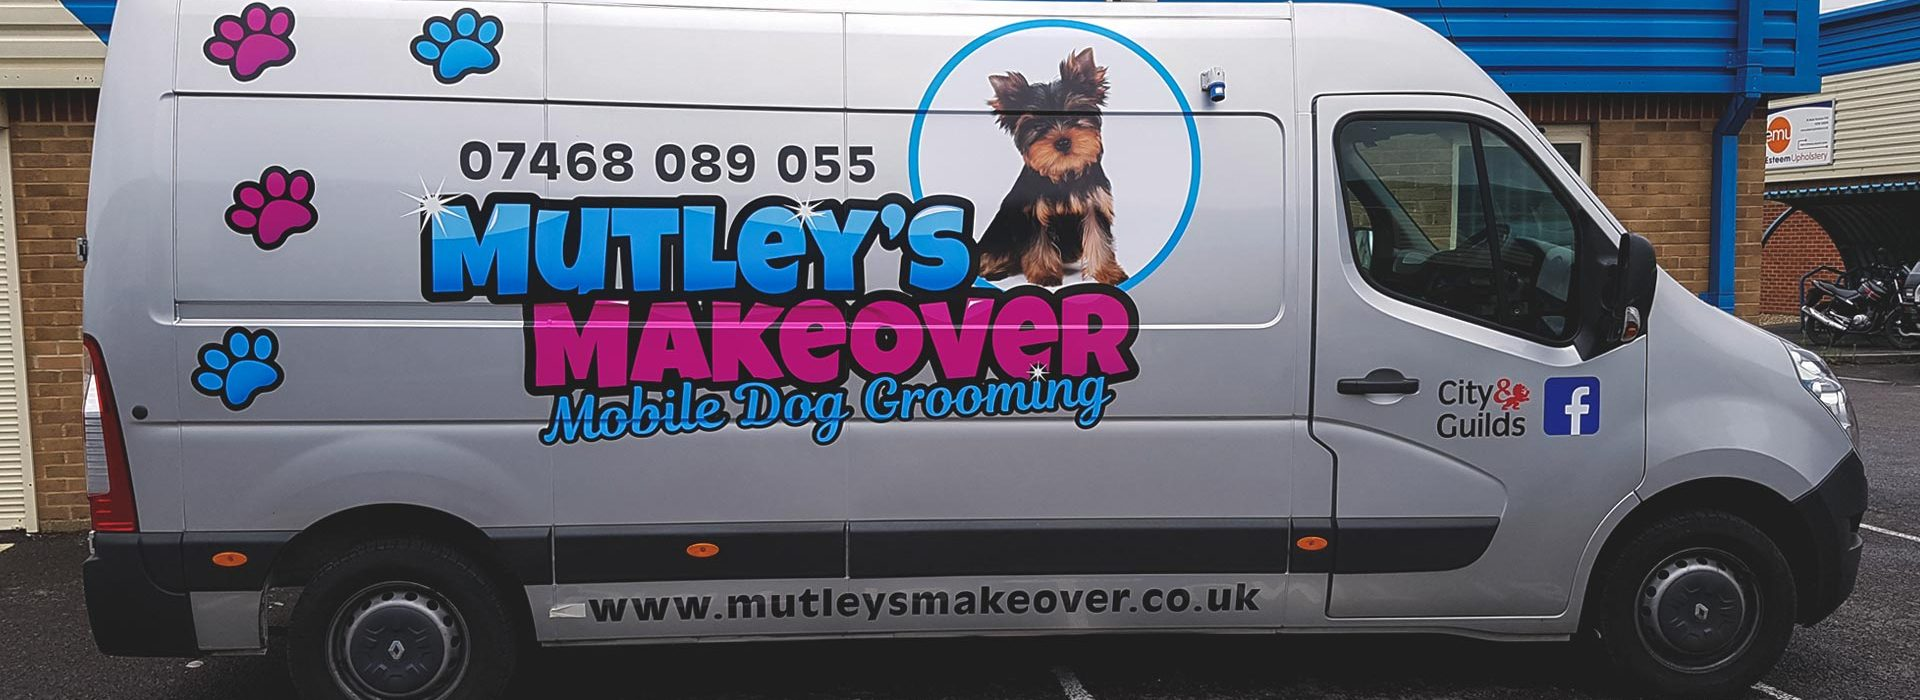 Portfolio - Mutley's Makeover - Vehicle Wrap